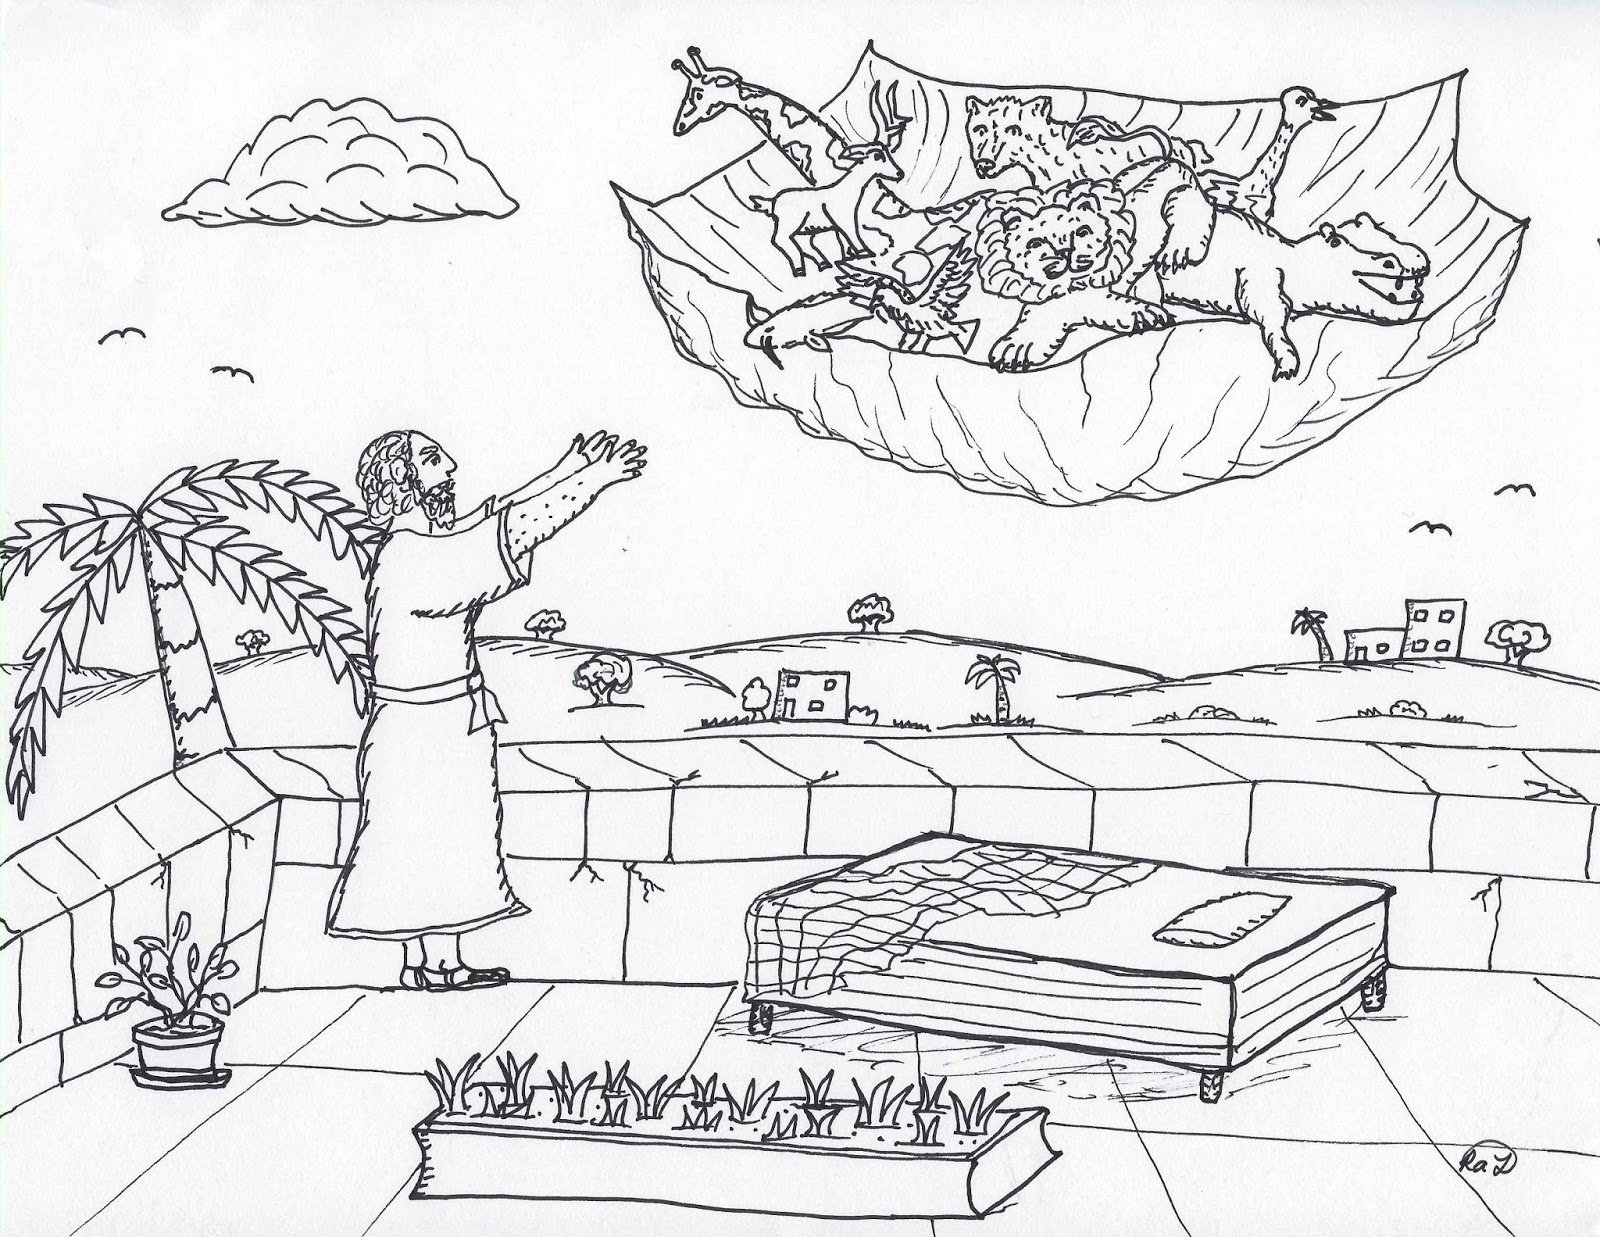 Robin's Great Coloring Pages: Apostle Peter and the